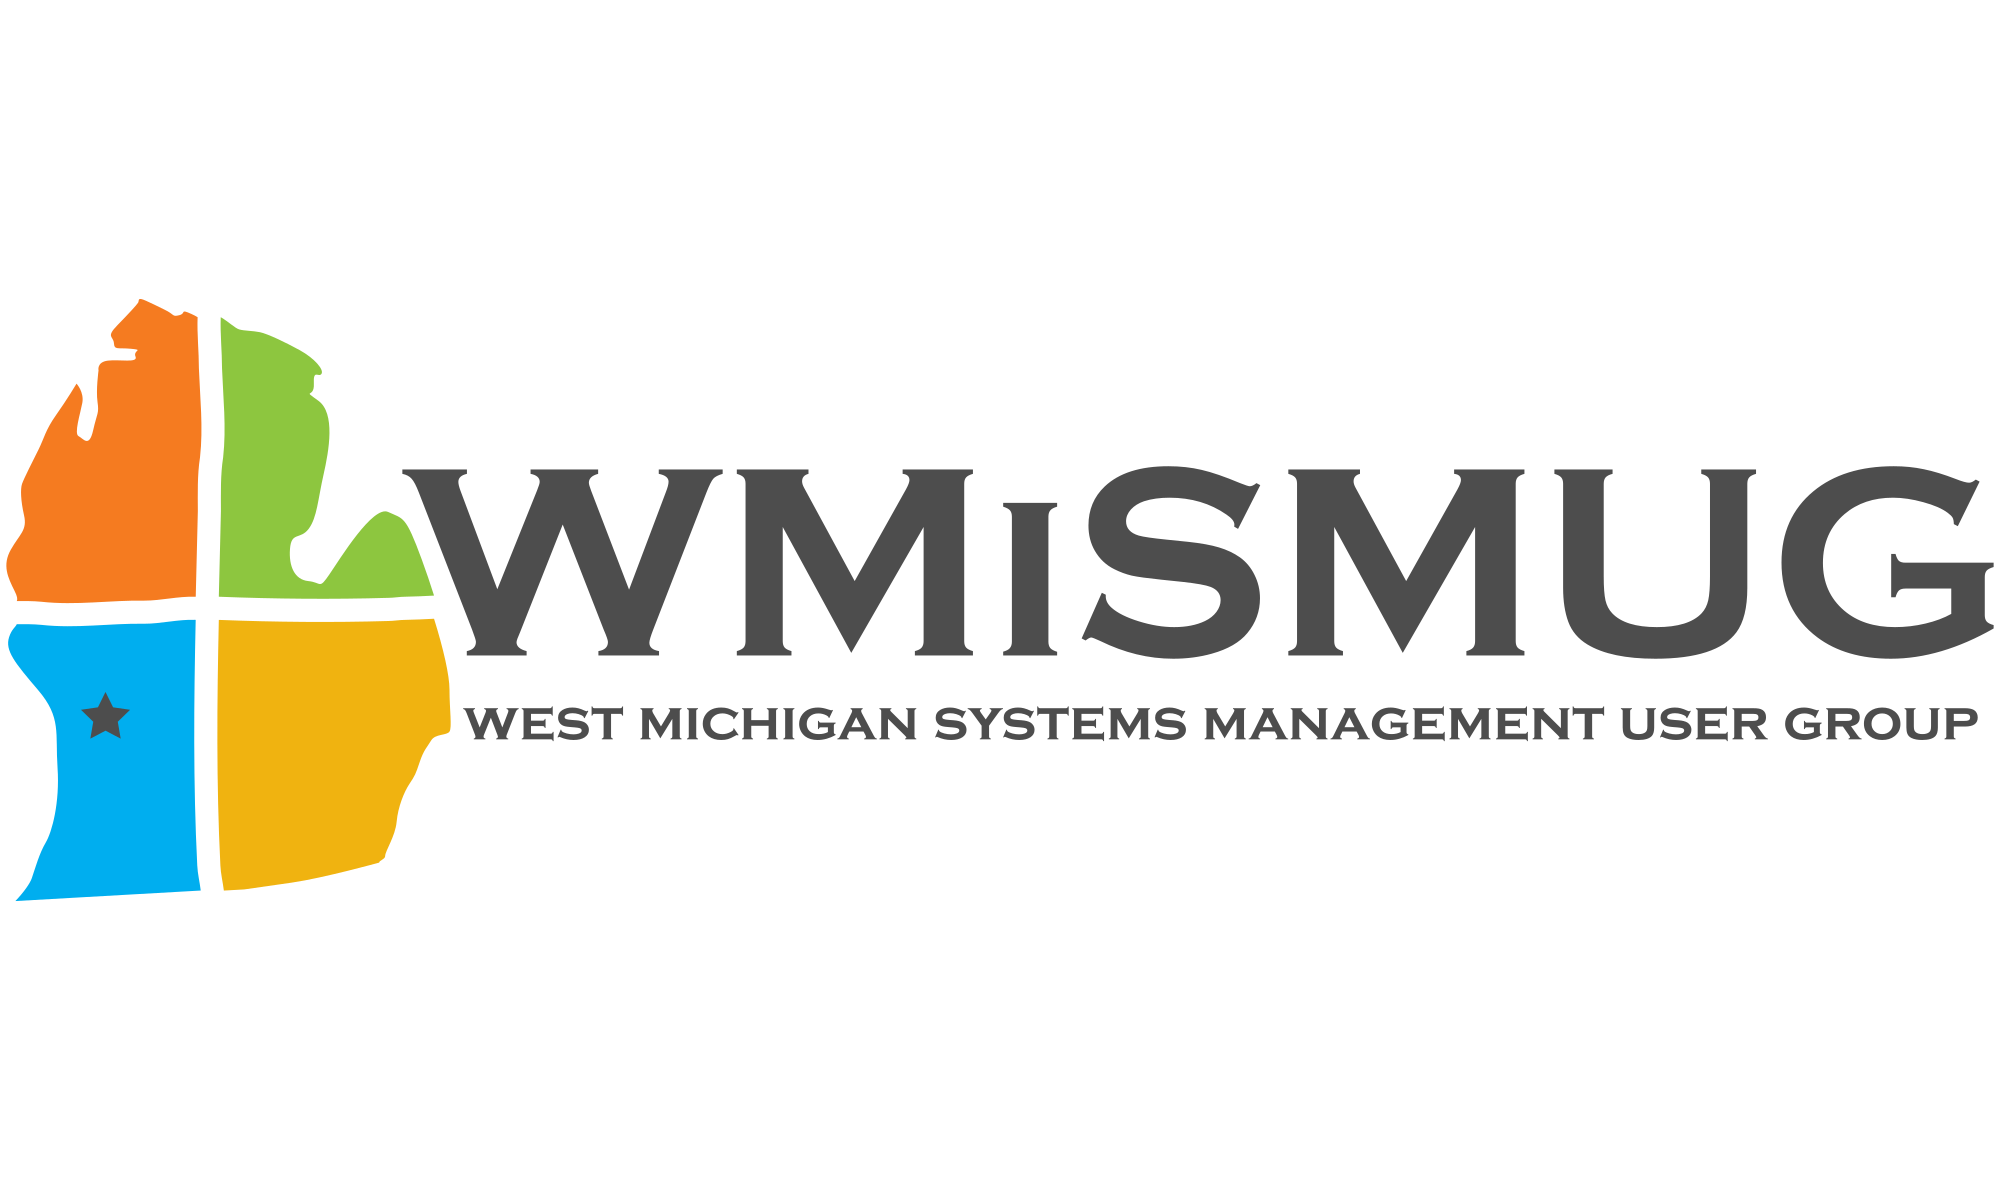 West Michigan Systems Management User Group